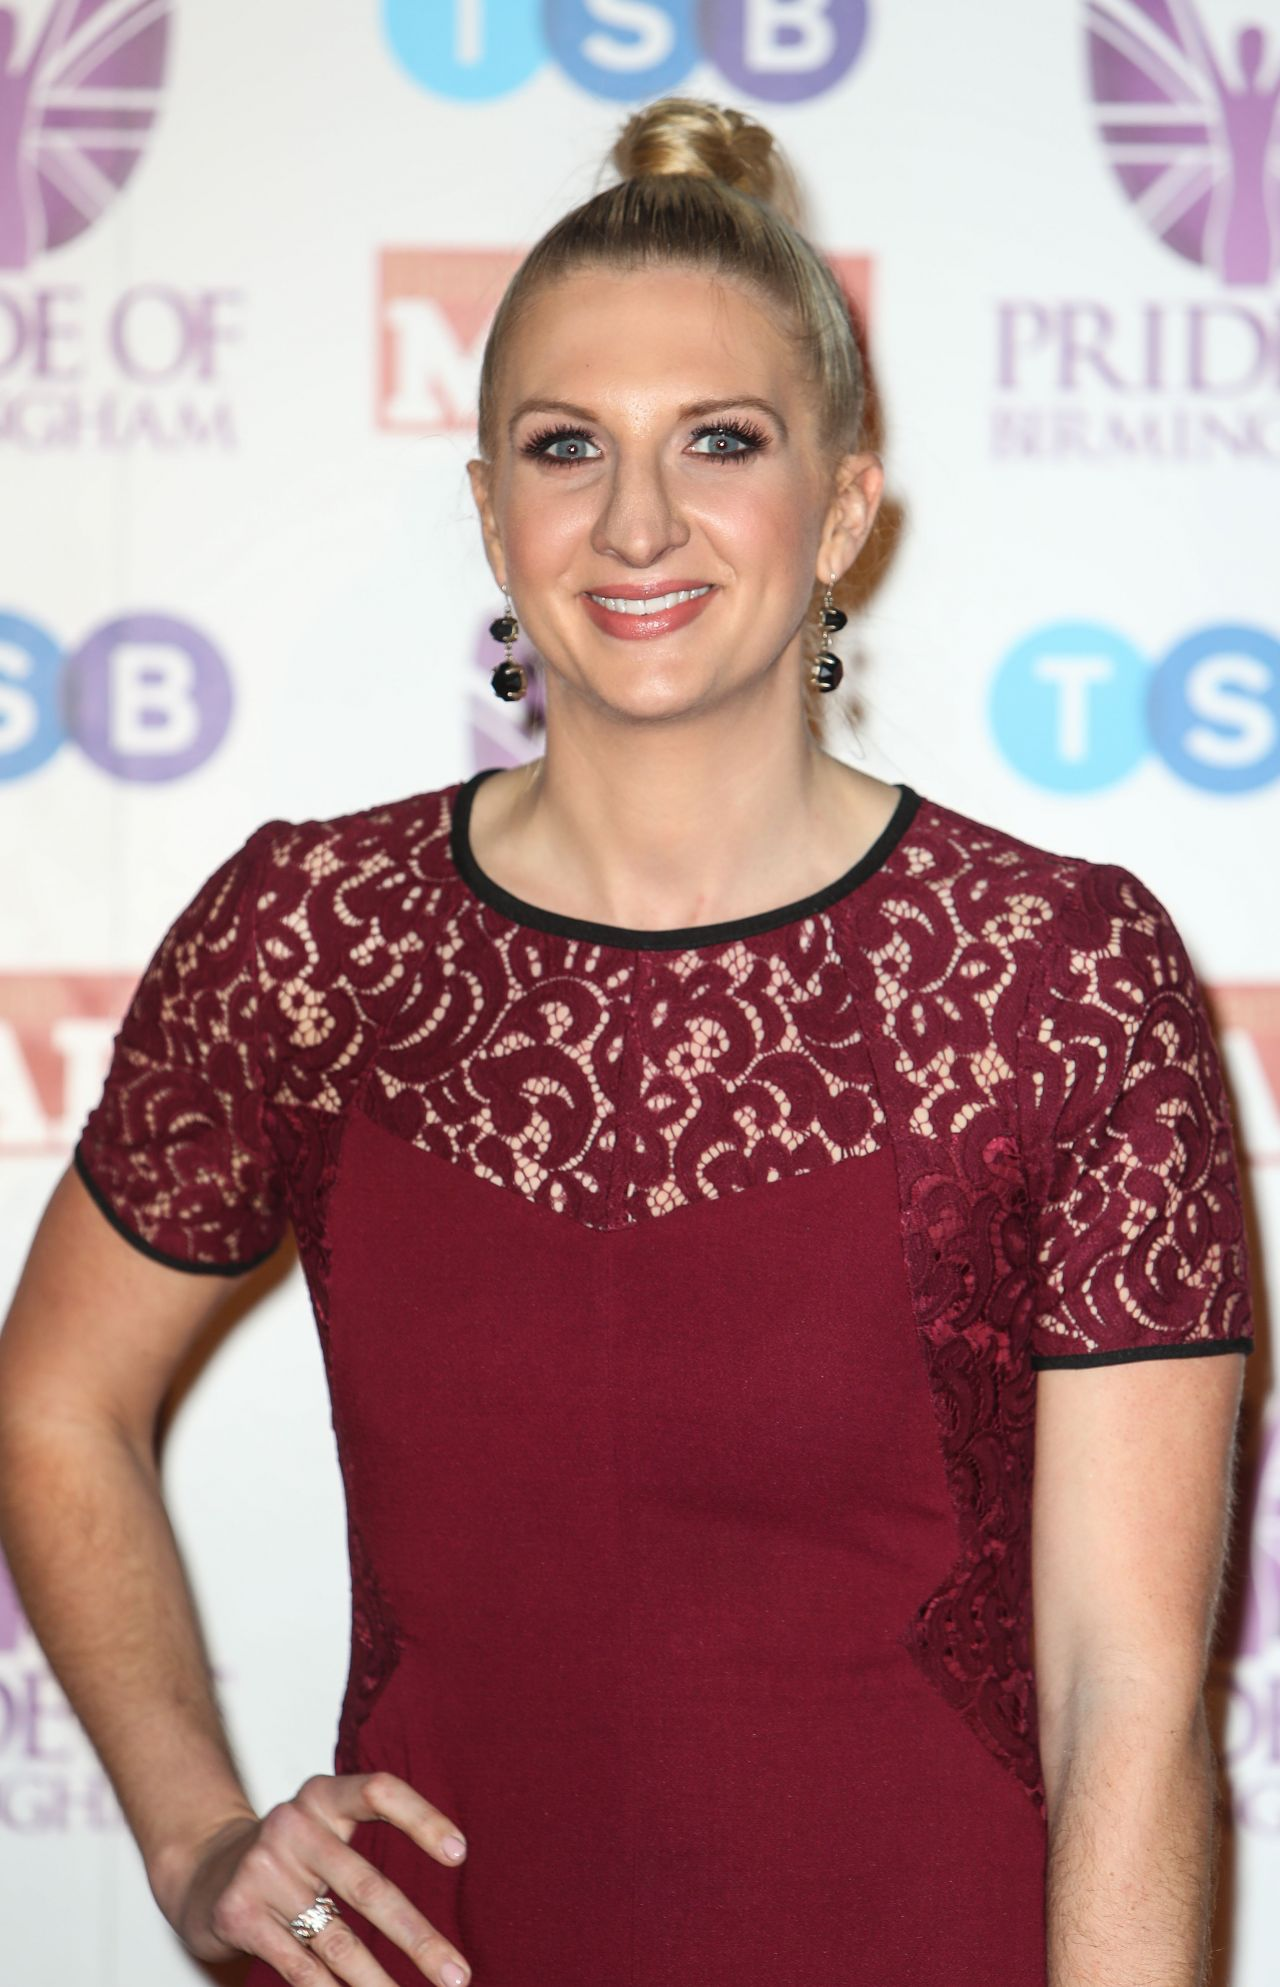 rebecca adlington - photo #10